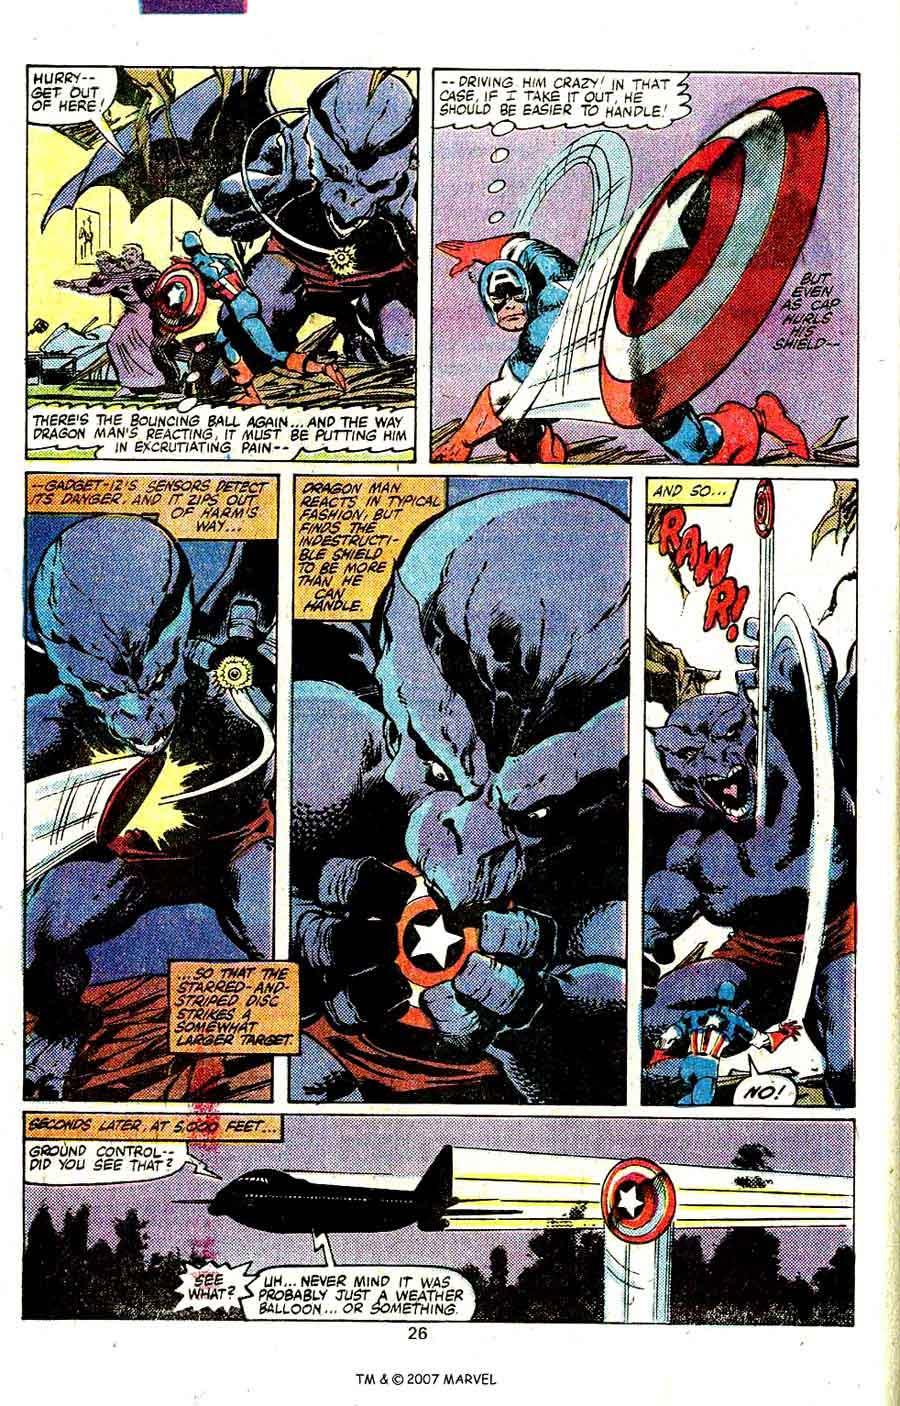 Captain America #248 marvel 1980s bronze age comic book page art by John Byrne